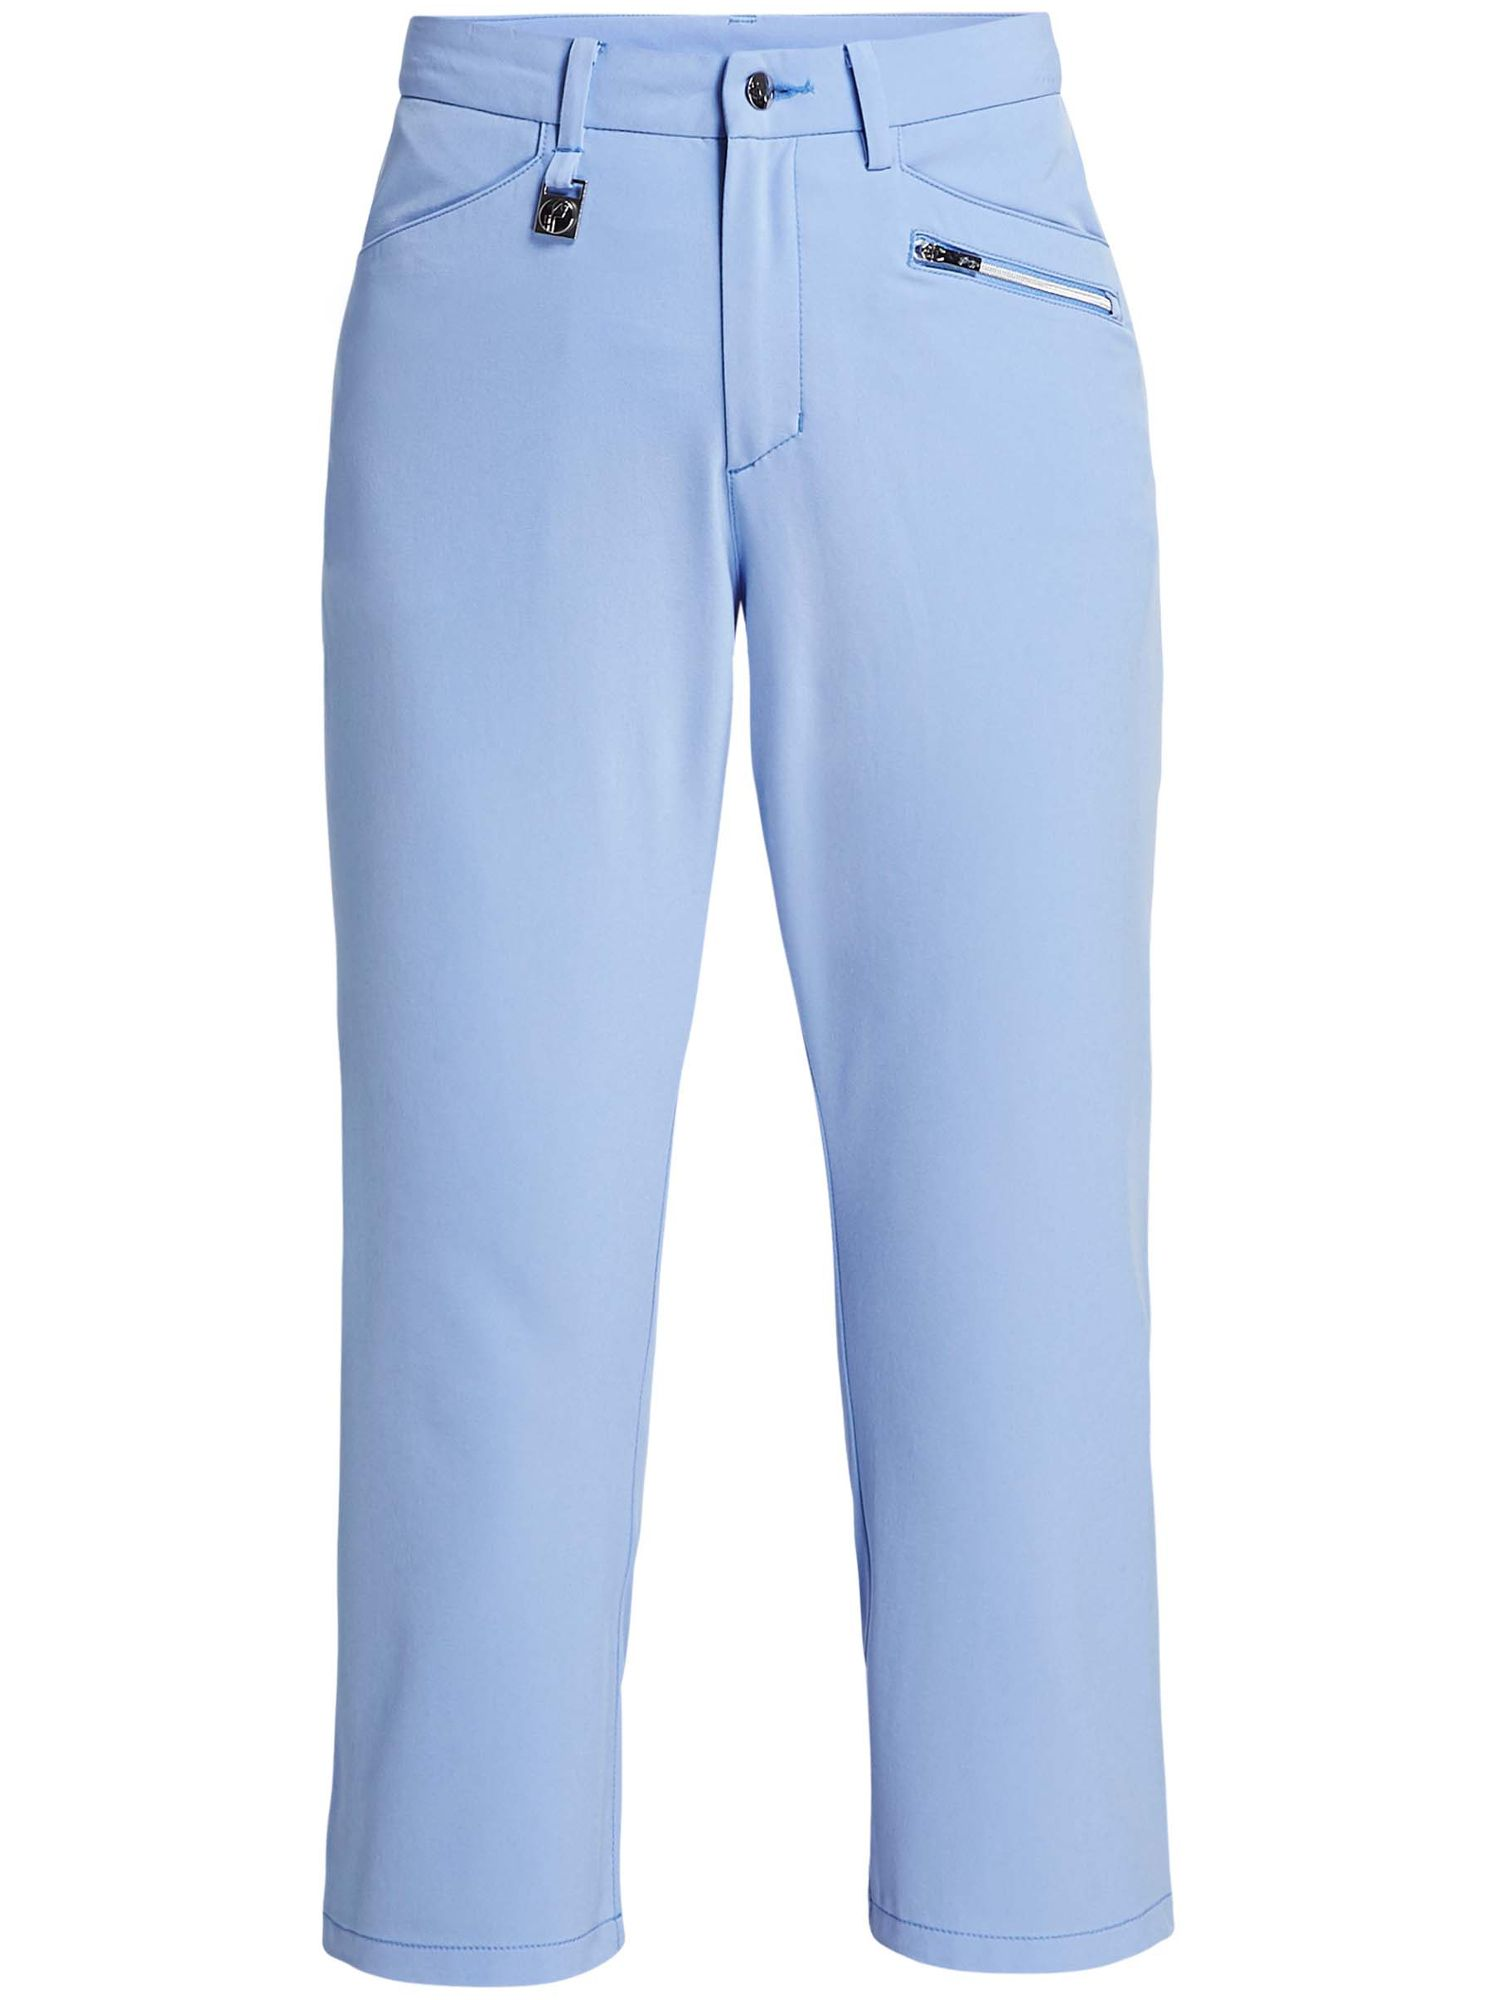 Rohnisch Comfort Stretch Capri, Blue